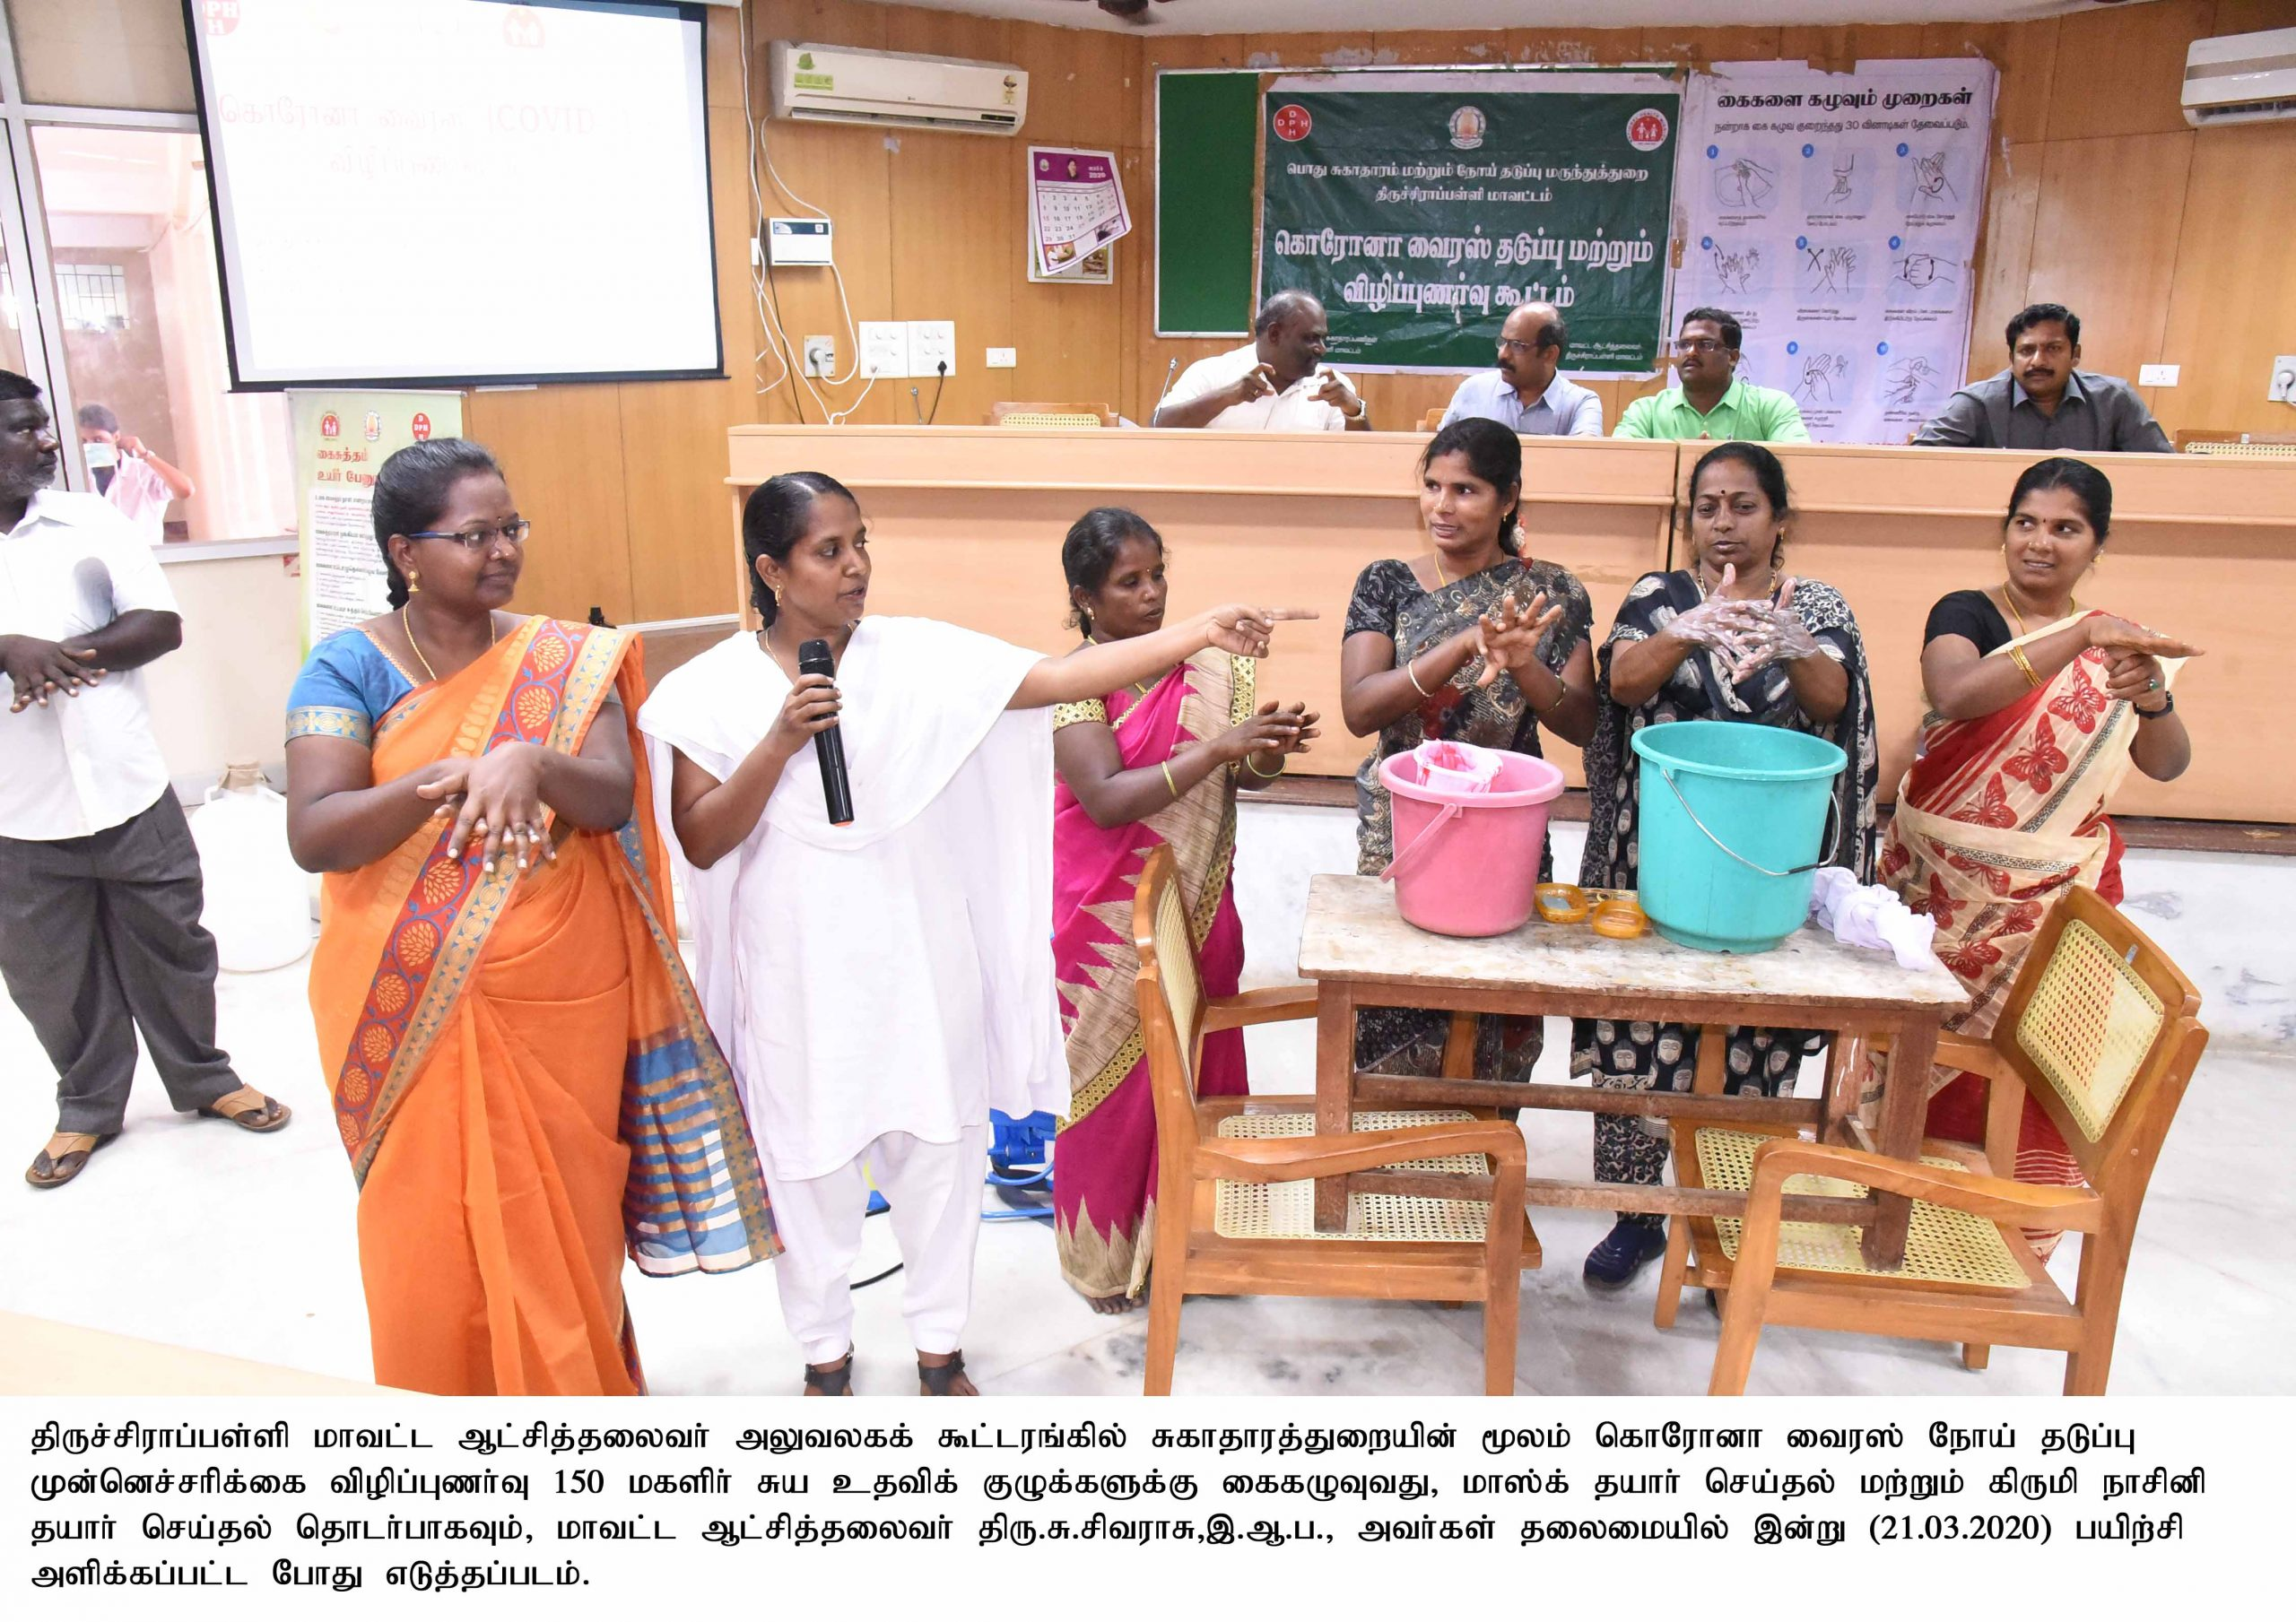 Corona Virus Prevention and Management - Demo on Preparation of Hand Sanitizer conducted on 21-03-2020 Presided by District Collector